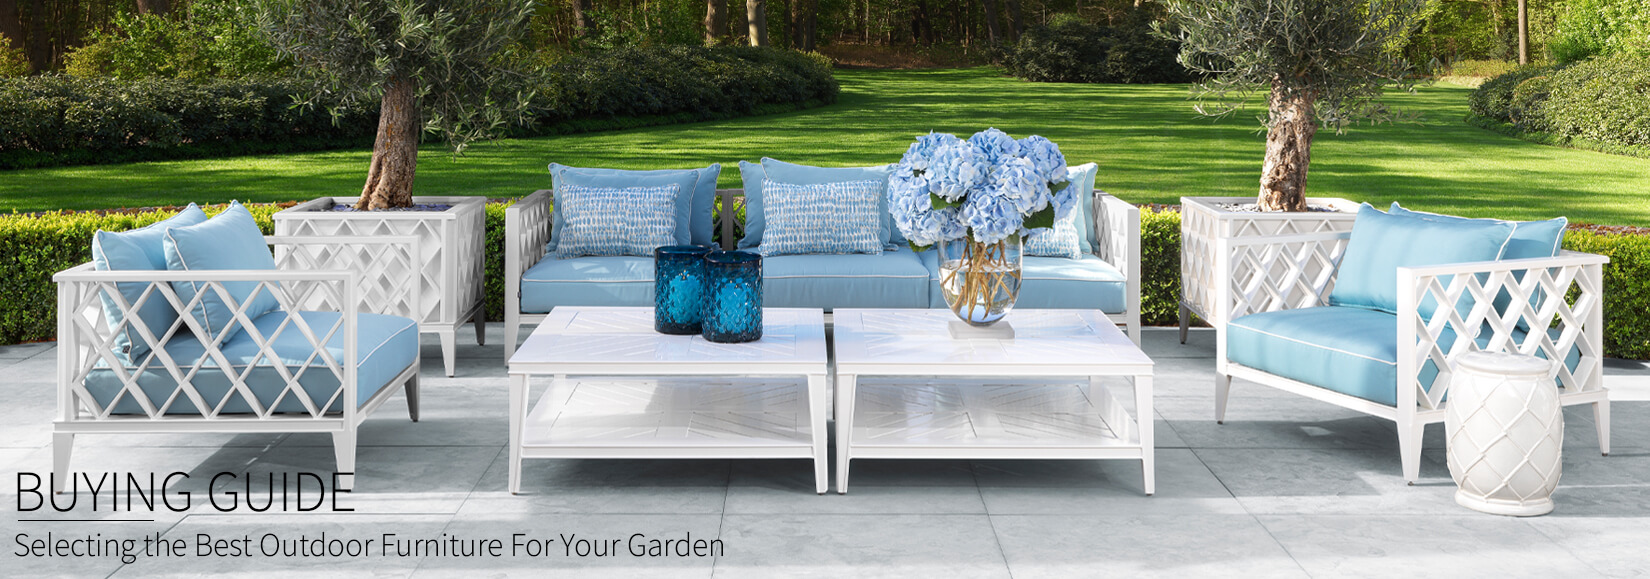 Garden Furniture Buyers Guide: Selecting the Best Outdoor Furniture For Your Garden